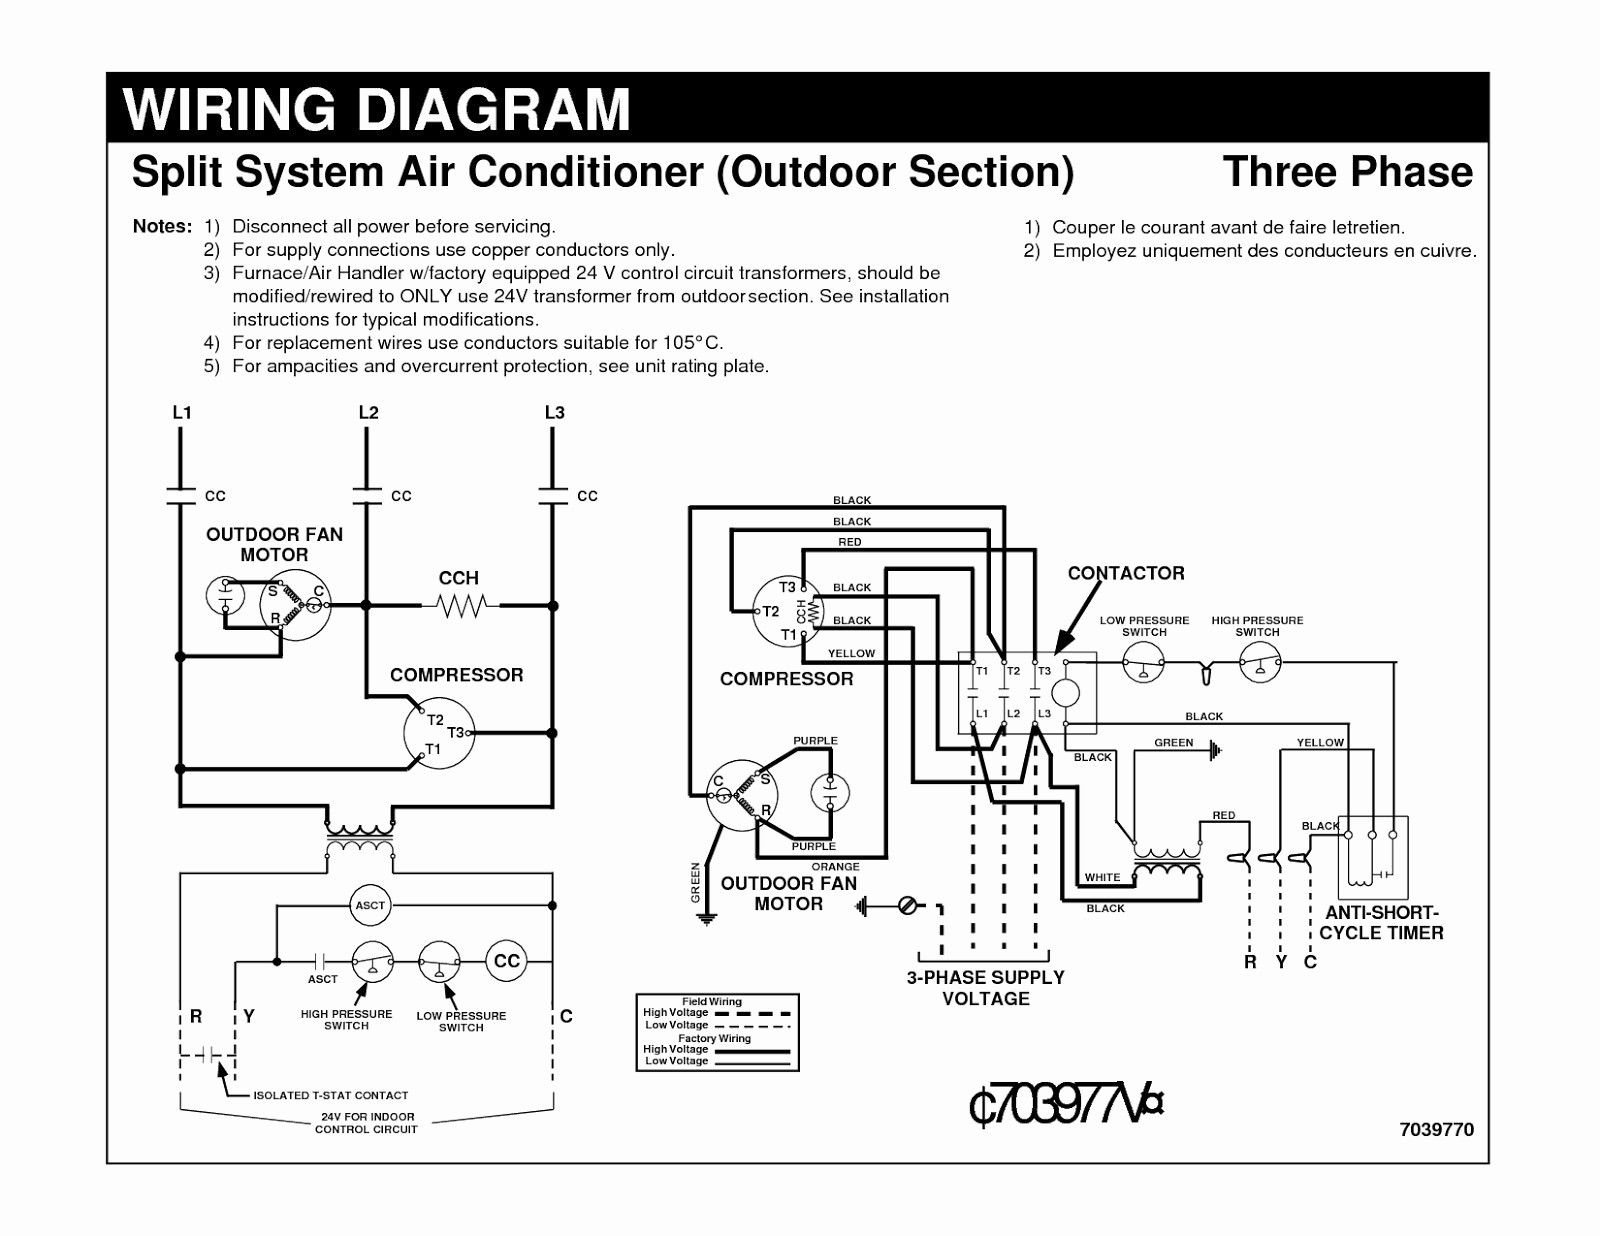 New Fire Alarm System Wiring Diagram